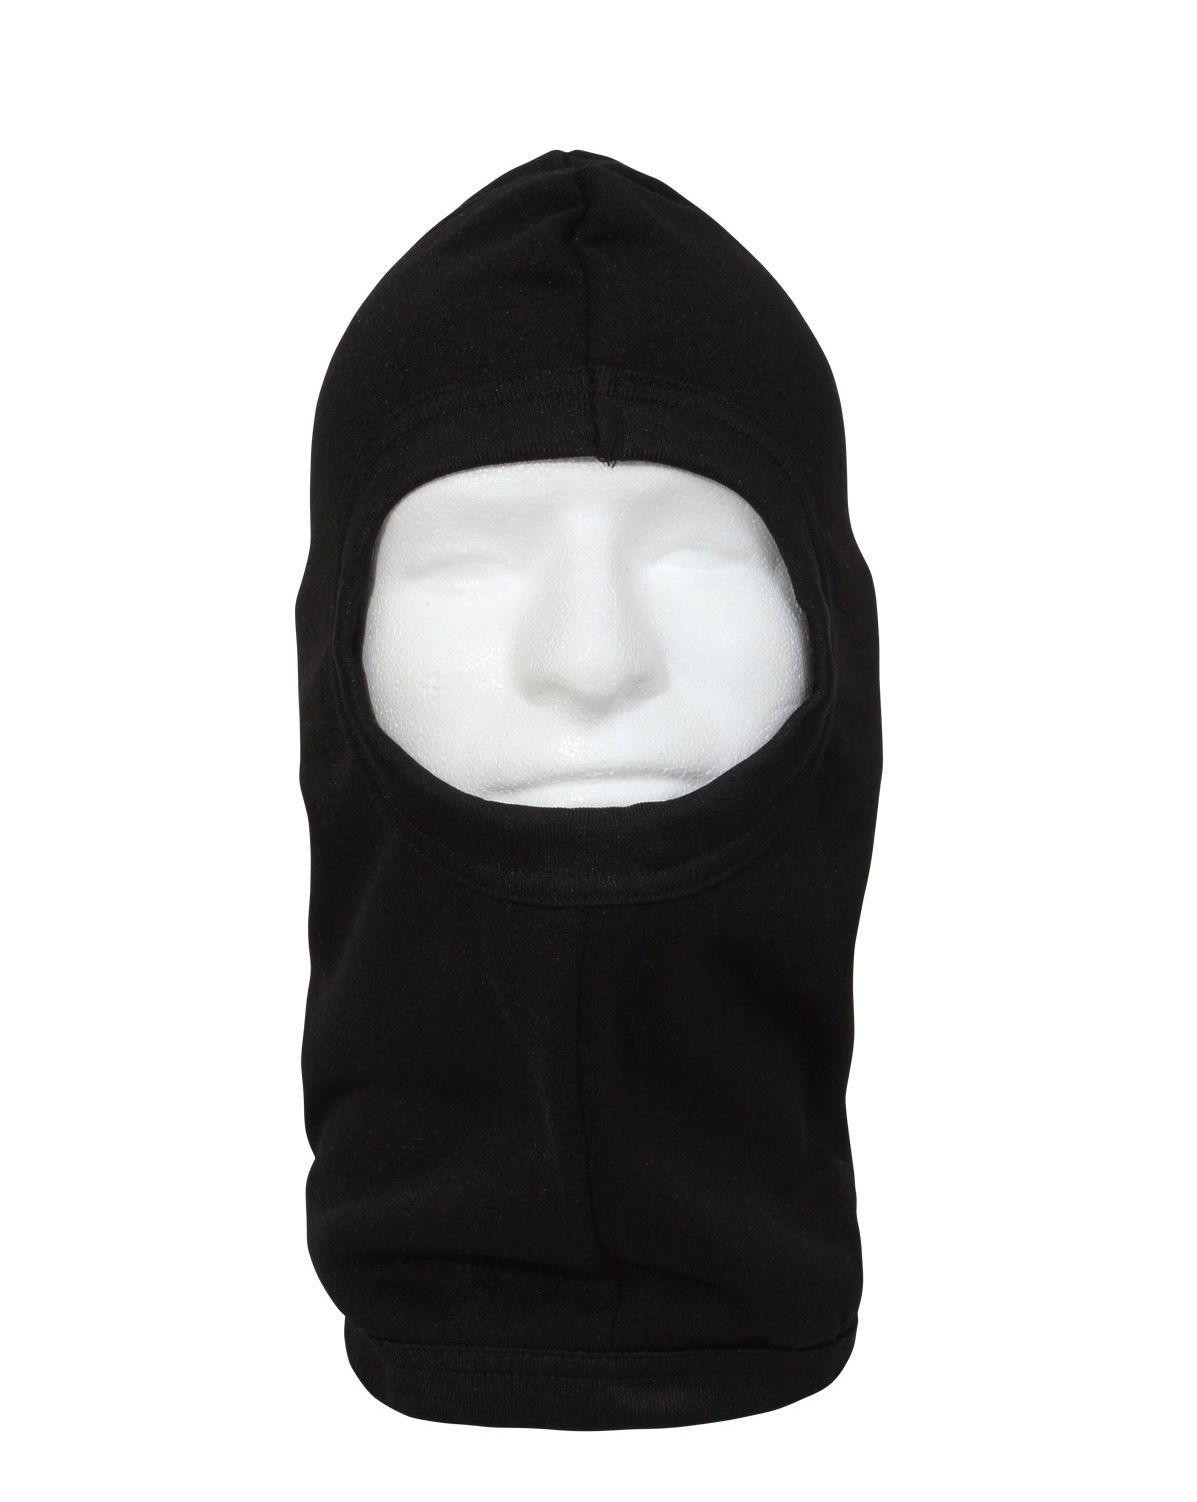 Image of   Rothco Ét hul-balaclava (Sort, One Size)